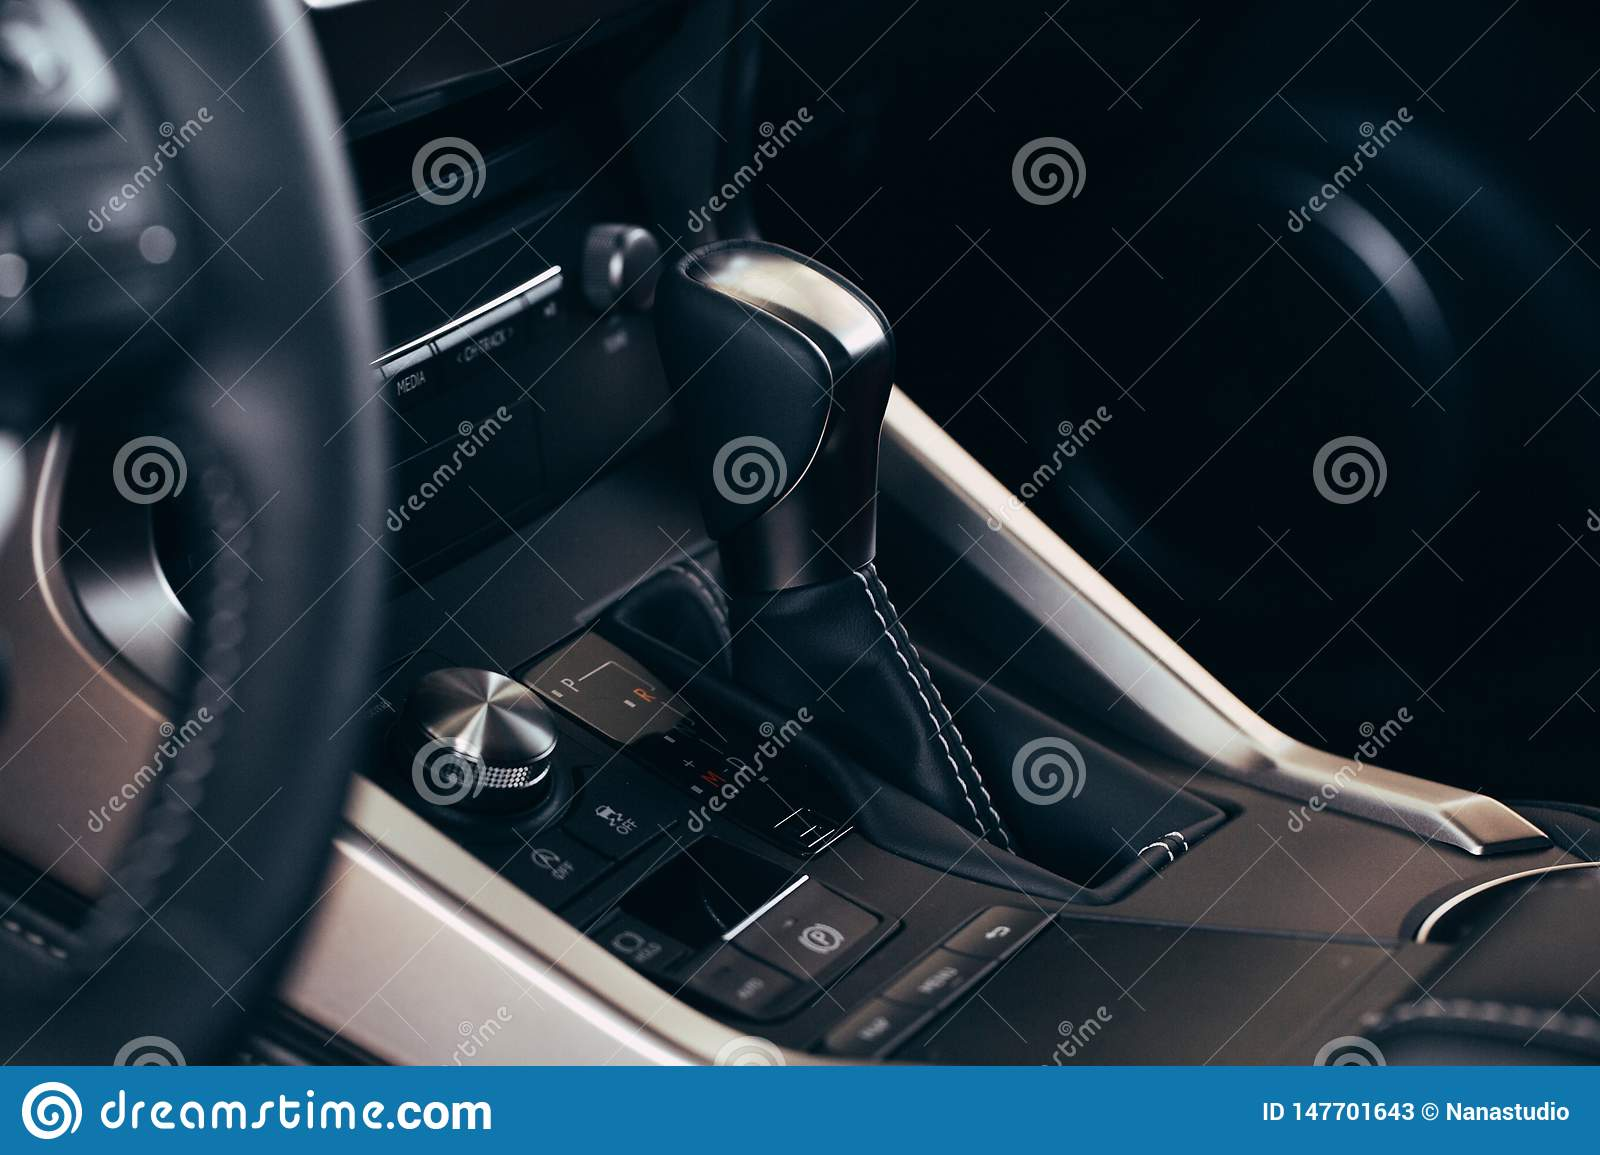 Selector automatic transmission with perforated leather in the interior of a modern expensive car. The background is blurred